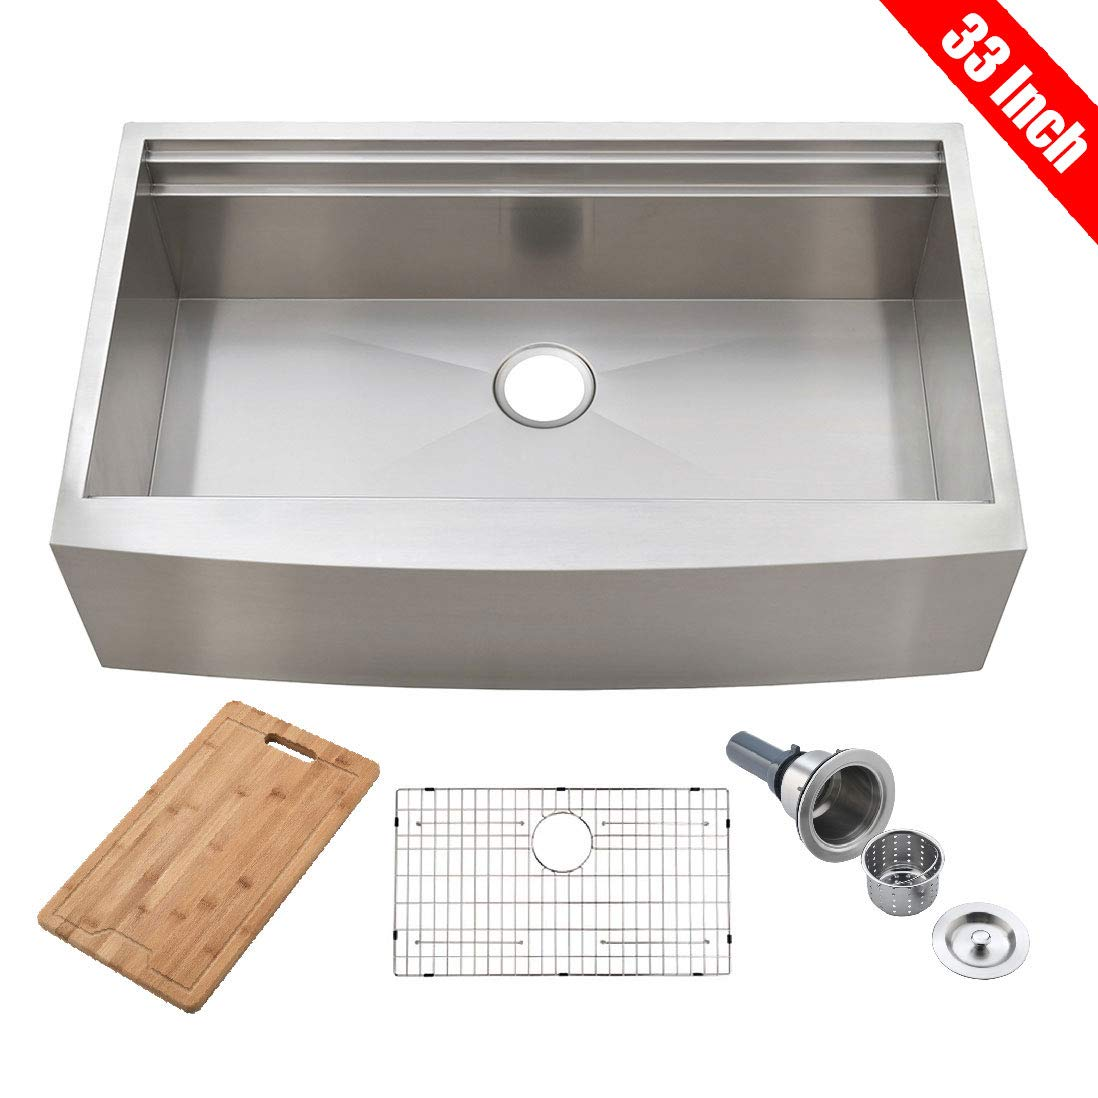 KINGO HOME 33-Inch 9 Inch 18 Gauge Single Bowl Handmade Stainless Steel Drop-In Farmhouse Apron-front Workstation Kitchen Sink, Kitchen Sink with Integrated Ledge and Accessories